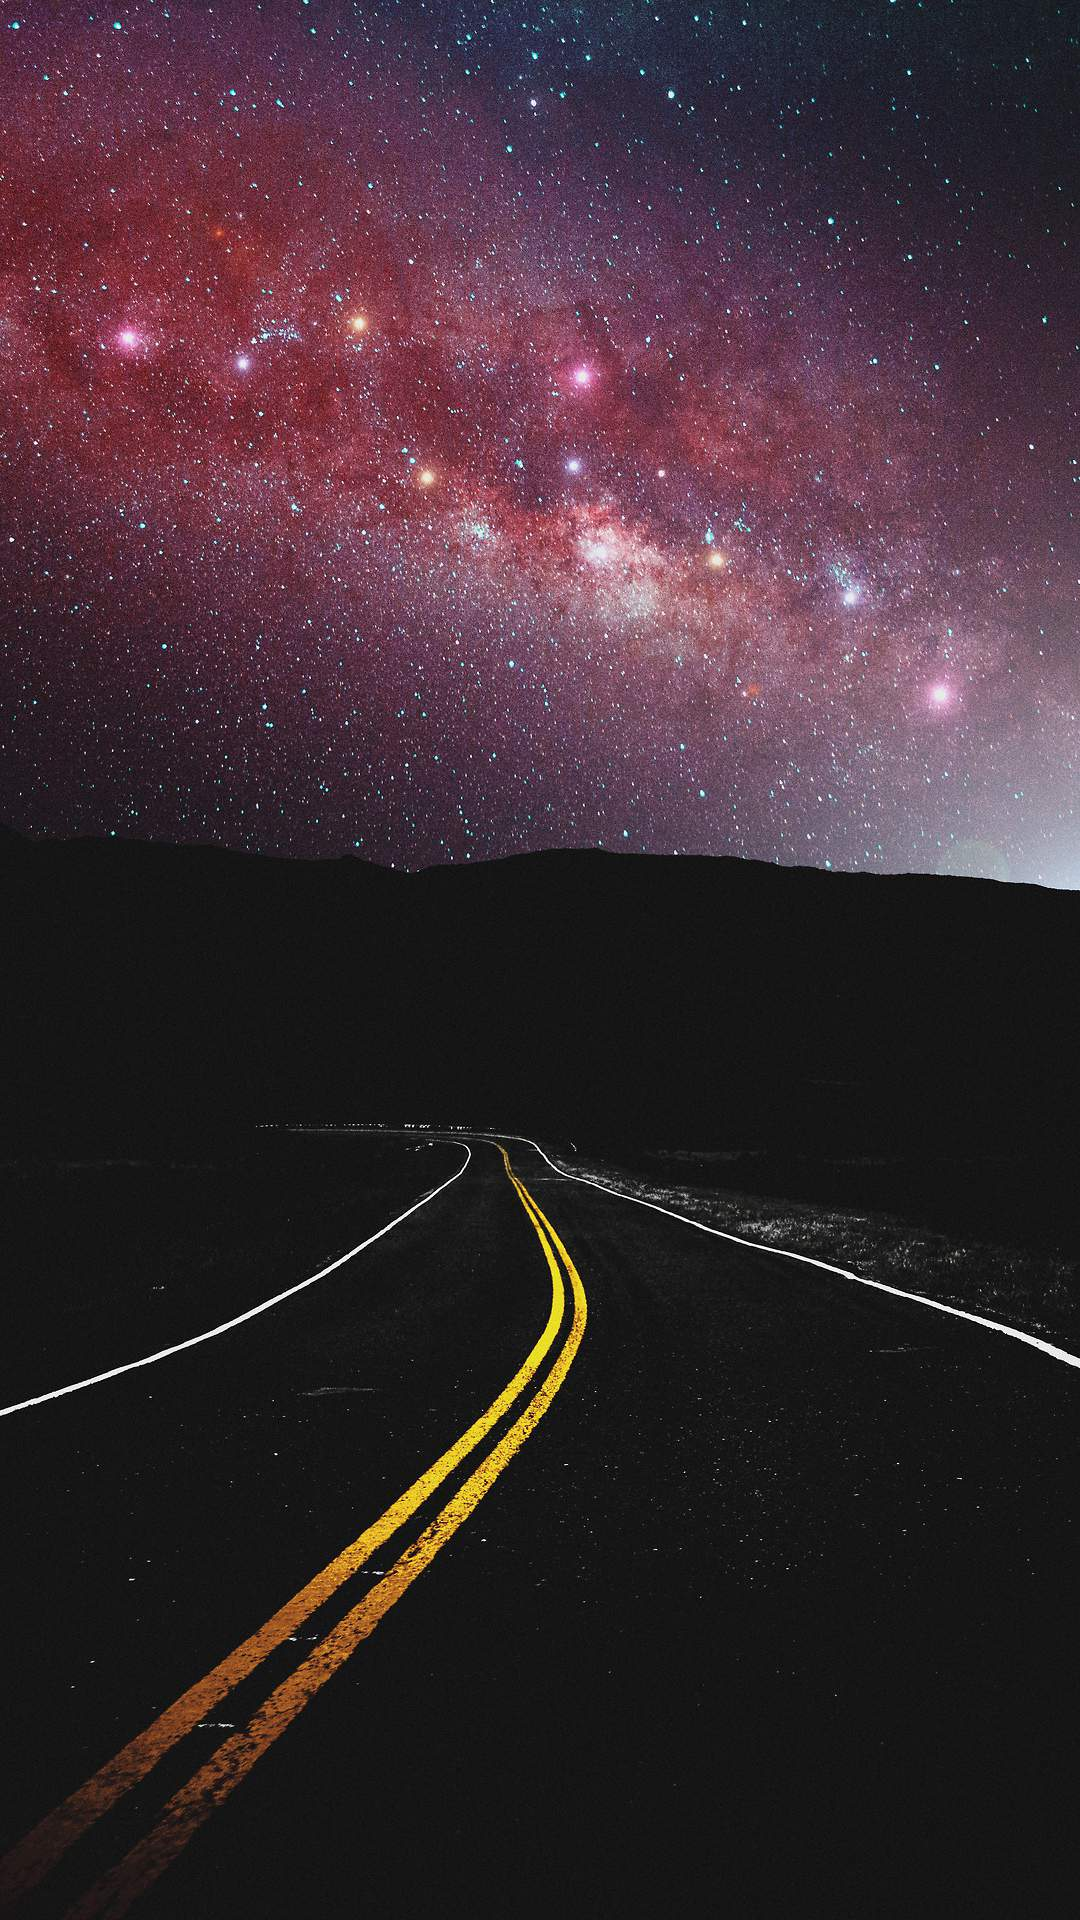 Milky Way View from Road iPhone Wallpaper